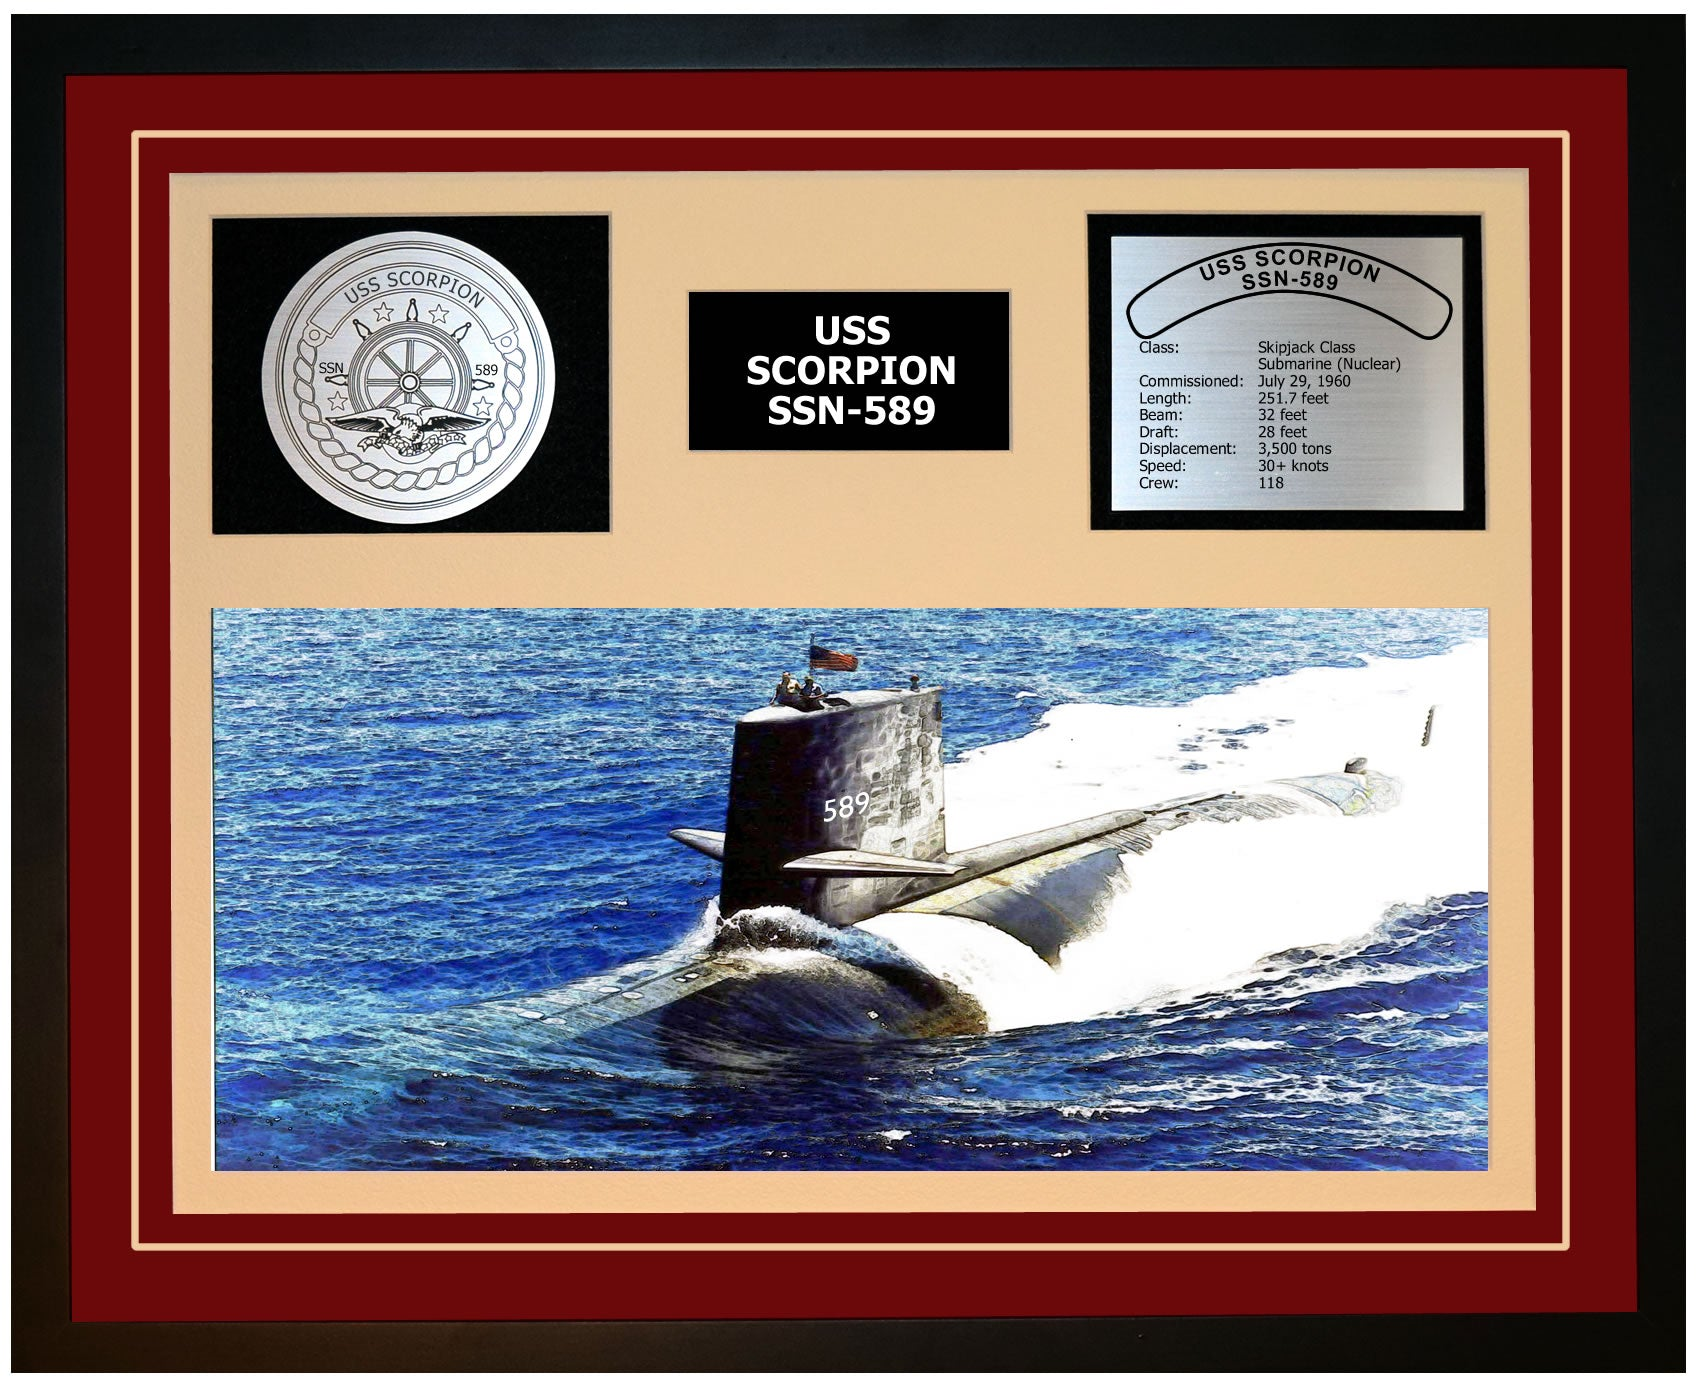 USS SCORPION SSN-589 Framed Navy Ship Display Burgundy